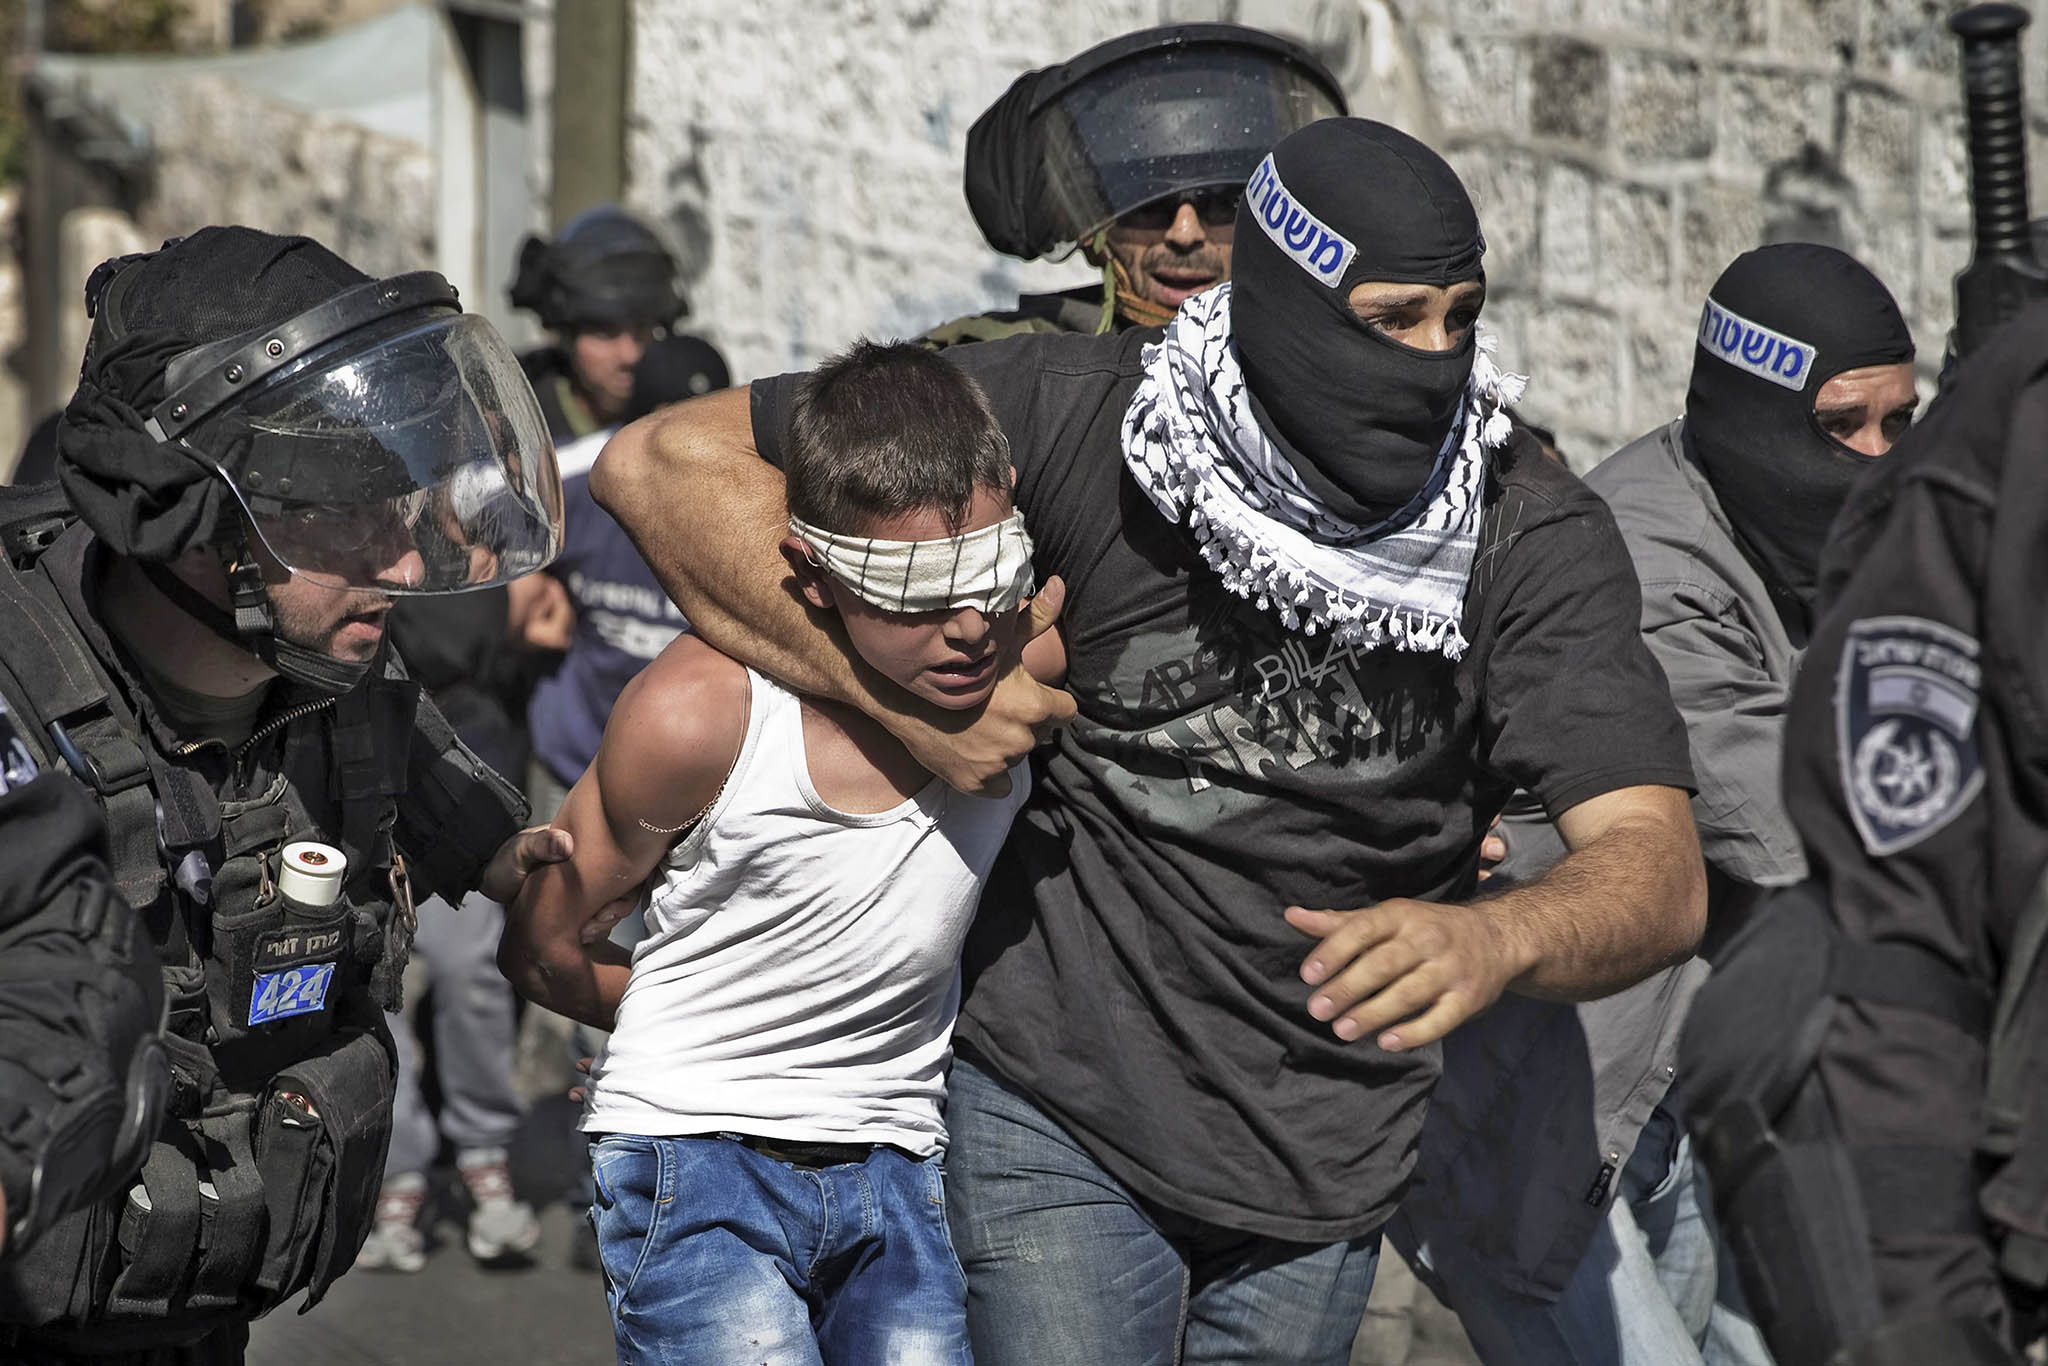 Israeli police detain Palestinian youth following clashes after Friday prayers in East Jerusalem neighbourhood of Wadi al-Joz